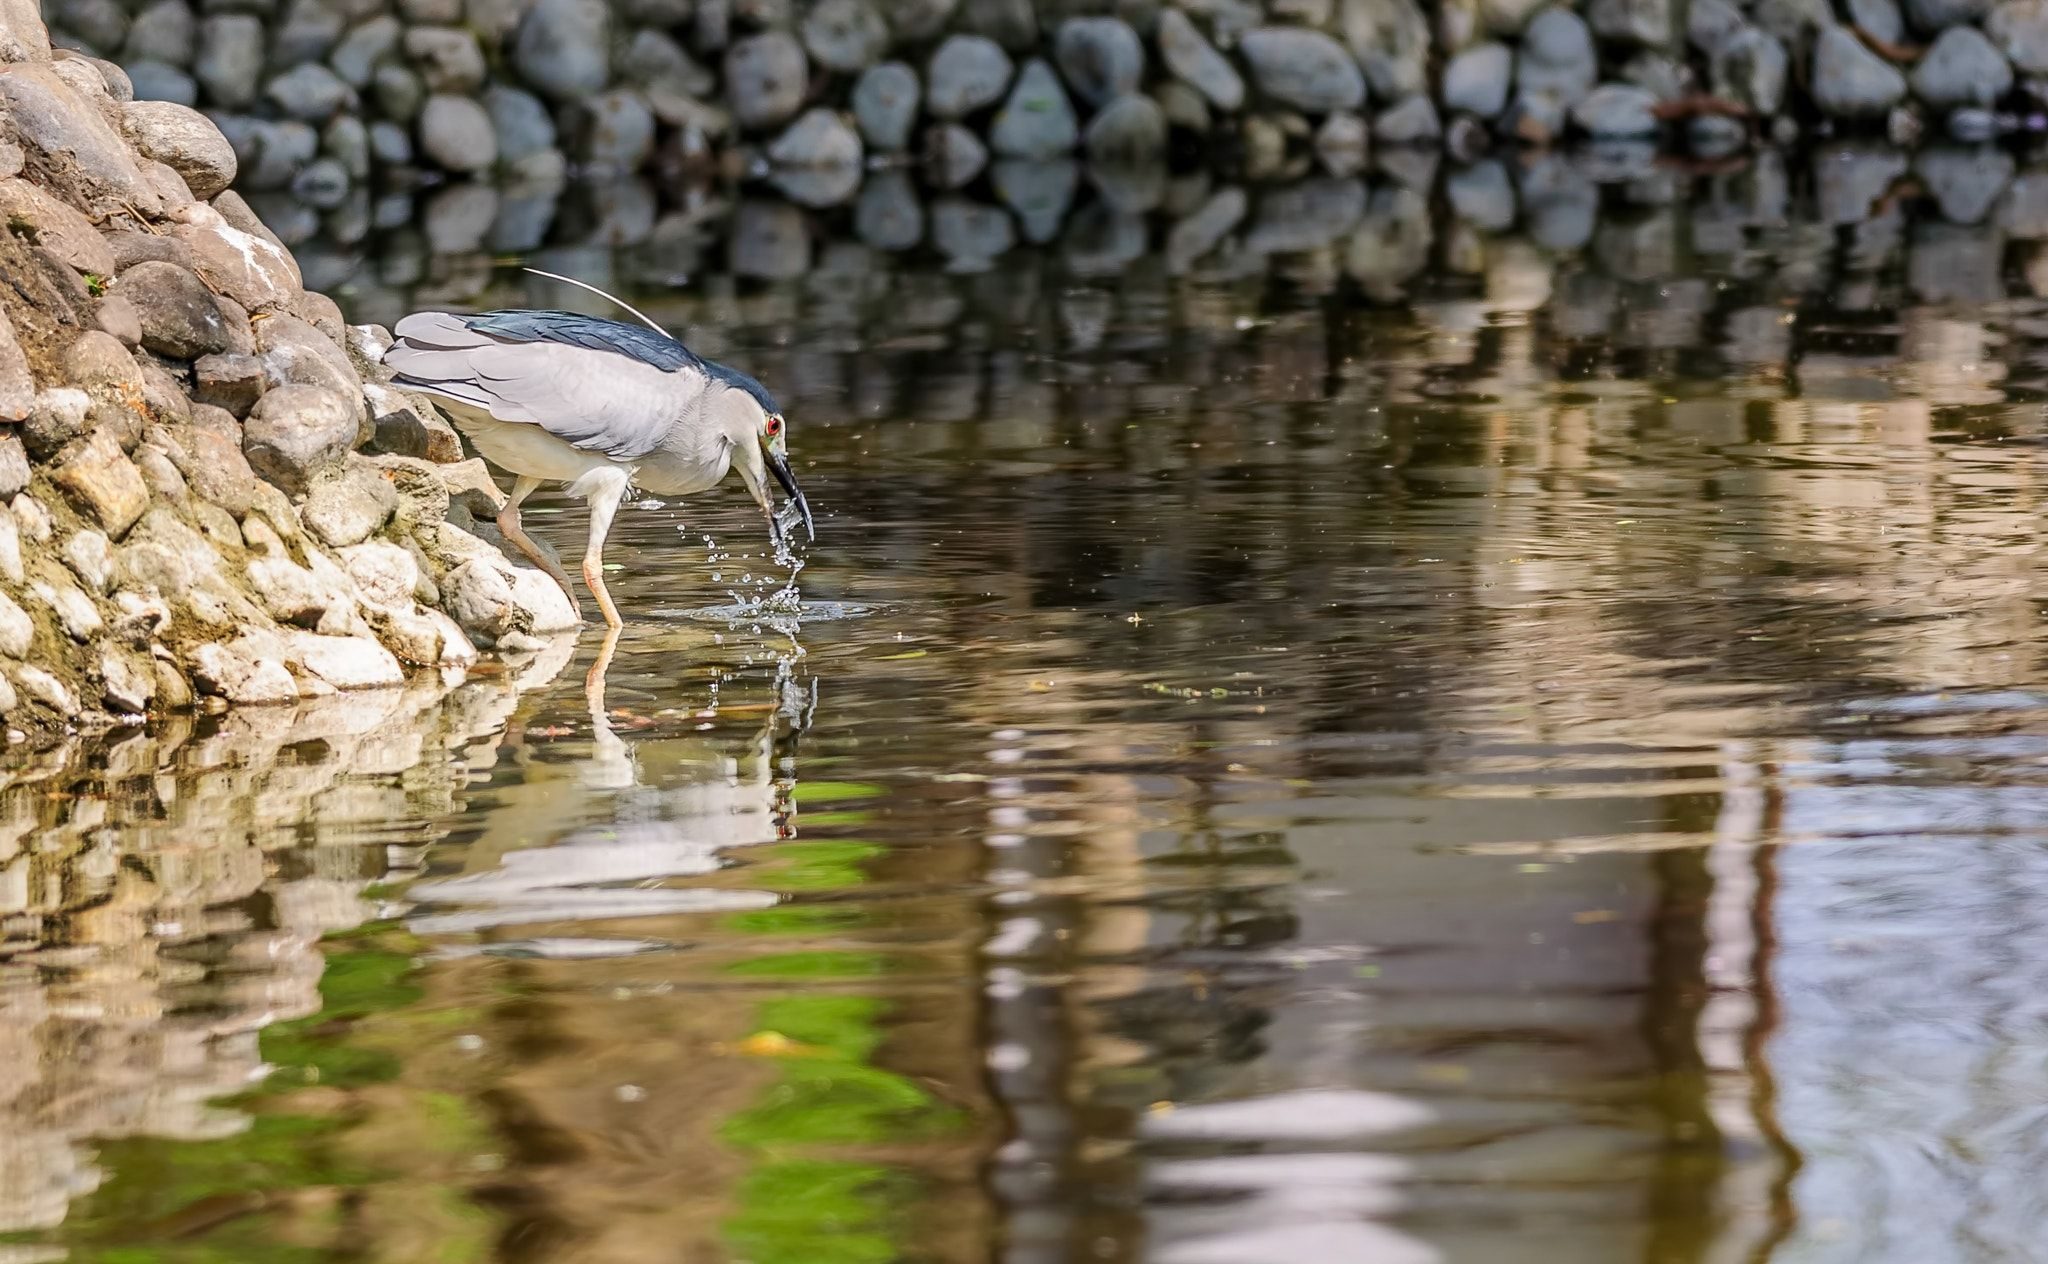 Bird, Black-crowned Night Heron trying to catch fish - Bird, Black-crowned Night Heron, Nycticorax nycticorax, trying to catch fish